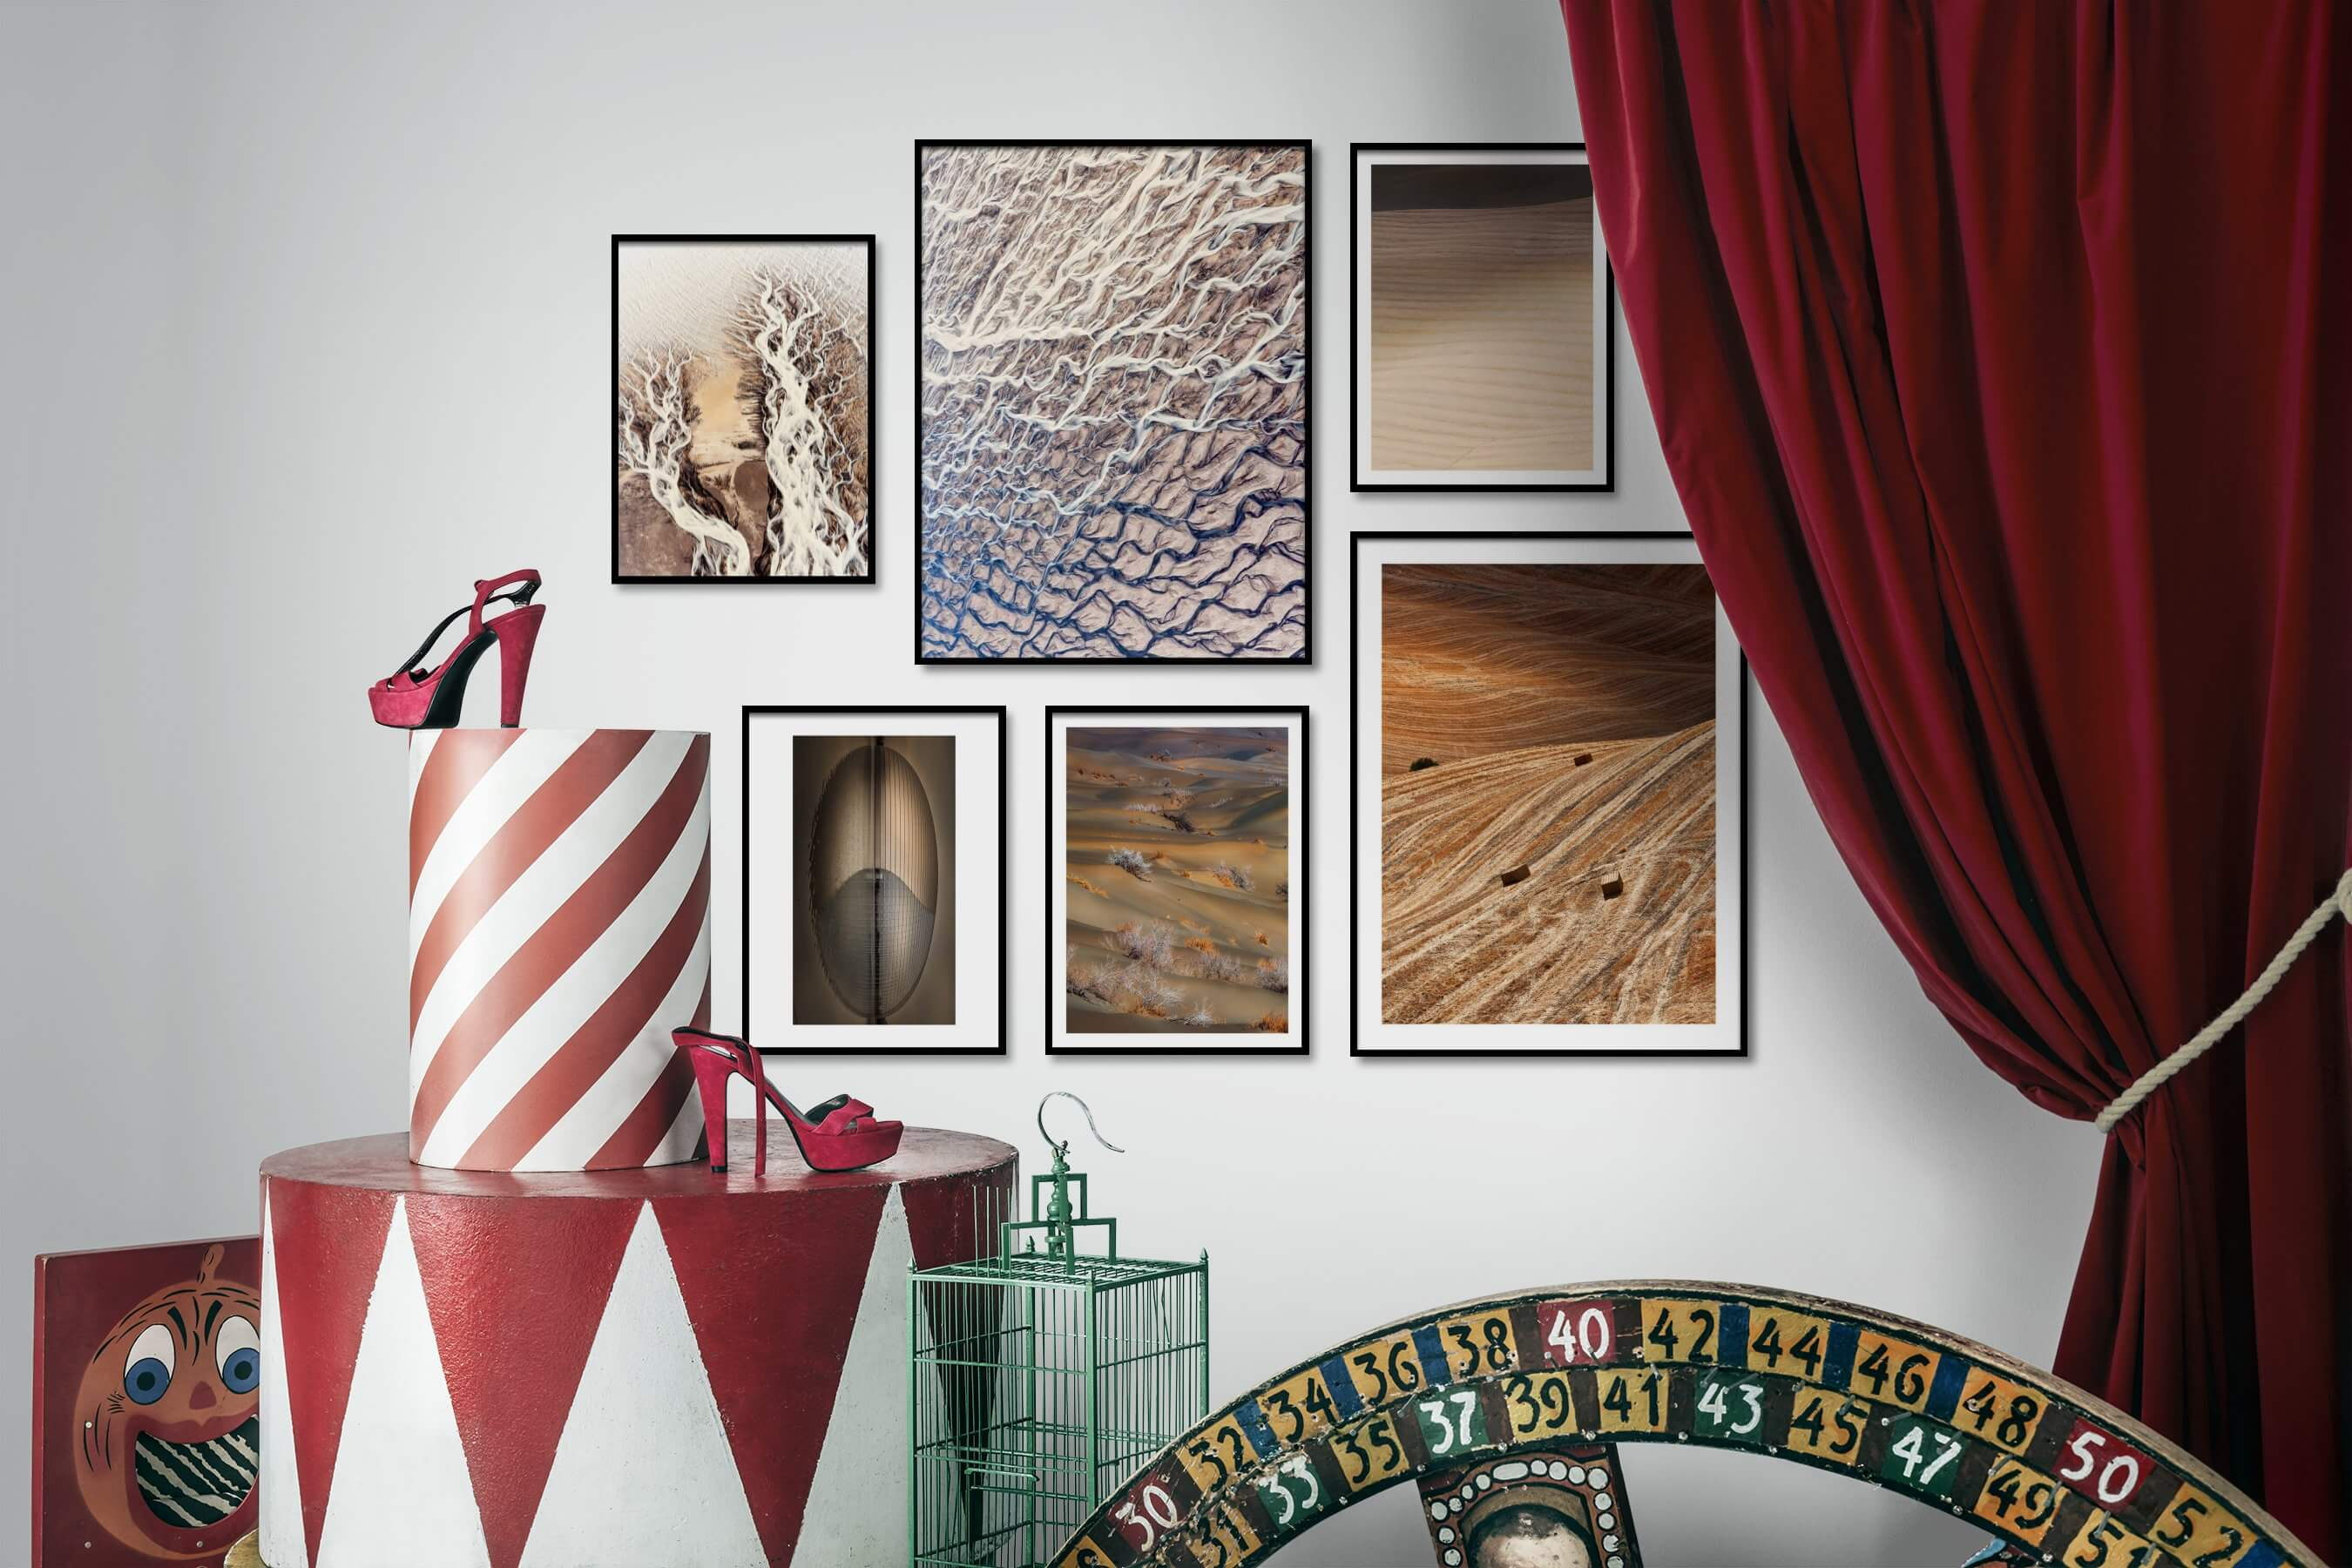 Gallery wall idea with six framed pictures arranged on a wall depicting For the Moderate, Nature, For the Maximalist, For the Minimalist, and Country Life